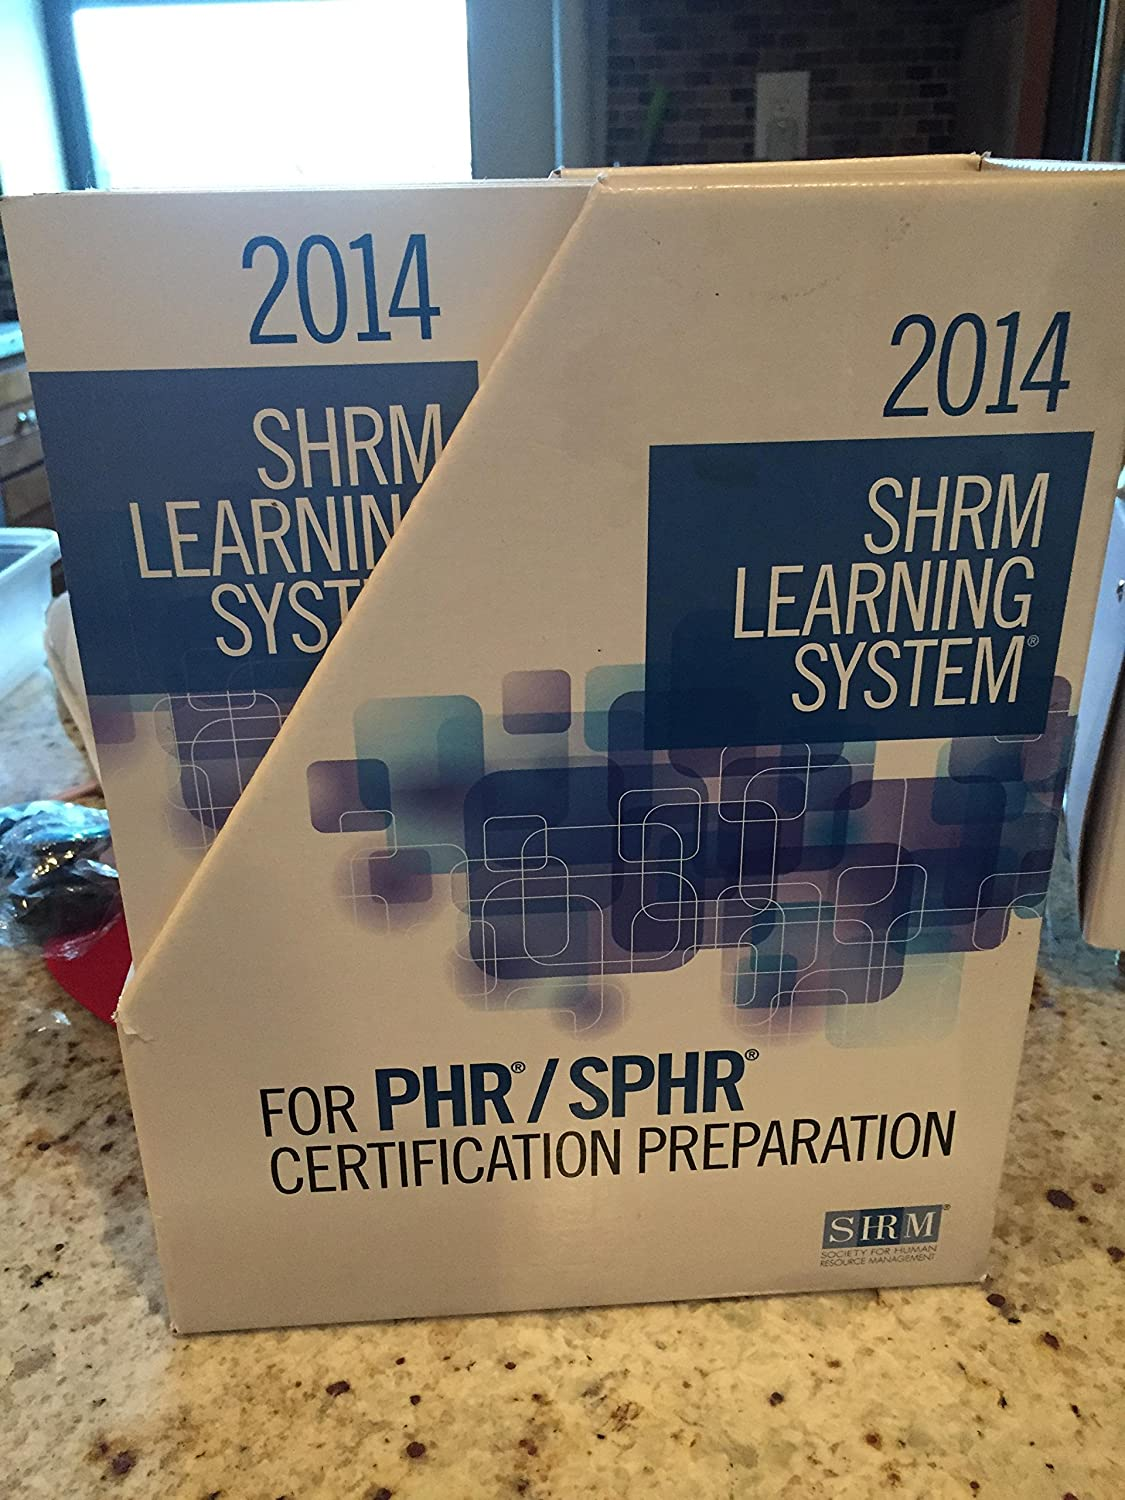 Amazon 2014 Shrm Learning System For Phrsphr Certification